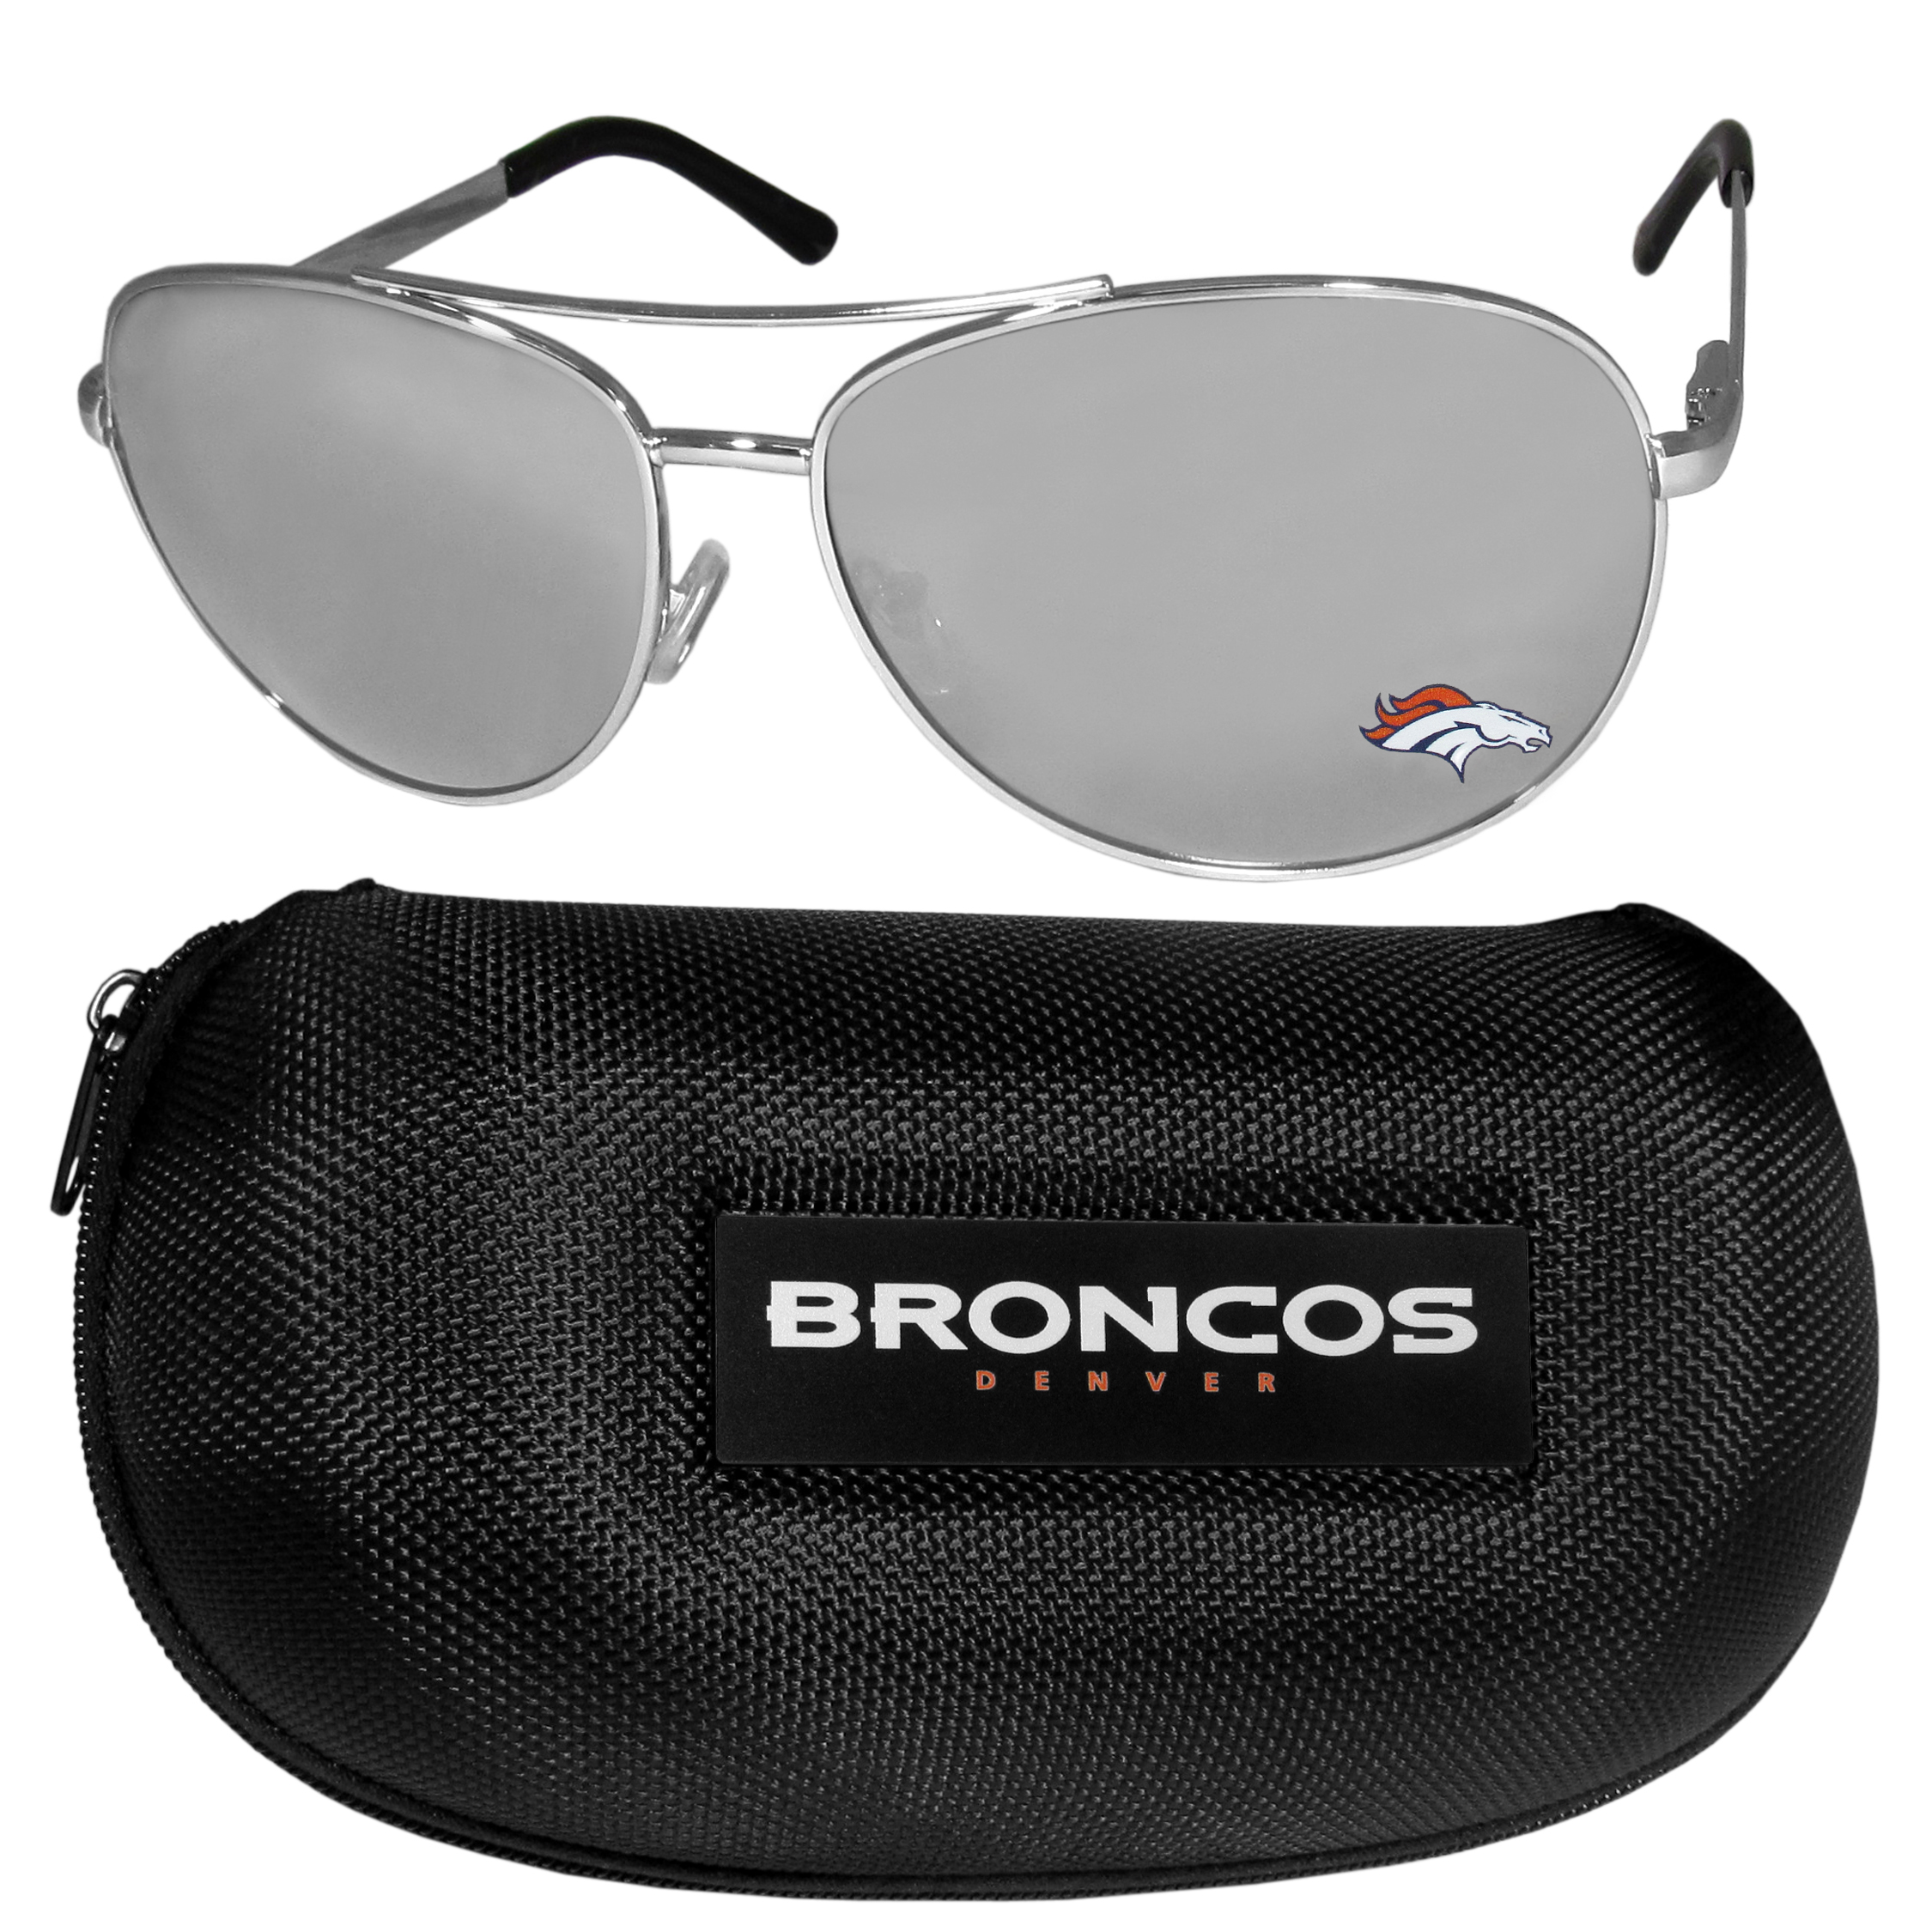 Denver Broncos Aviator Sunglasses and Zippered Carrying Case - Aviator sunglasses are truly an iconic retro fashion statement that never goes out-of-style. Our Denver Broncos  aviator sunglasses pair this classic look with your love of the game. The iridium coated lenses reduce glare while driving, boating, golfing and their 100% UVA/UVB rating provides you with the maximum UV protection for all your outdoor activities. A millennial favorite, these affordable designer frames are the perfect eyewear accessory for a sports fan that is looking for high-quality at an affordable price. The durable, flex hinged frames are tough enough for hiking and camping or if you prefer sun bathing by the pool or on the beach these shades will really stand the test of time. The sunglasses come with a hard shell zippered case which has a large team logo on the lid that will make even the most die-hard fan proud!